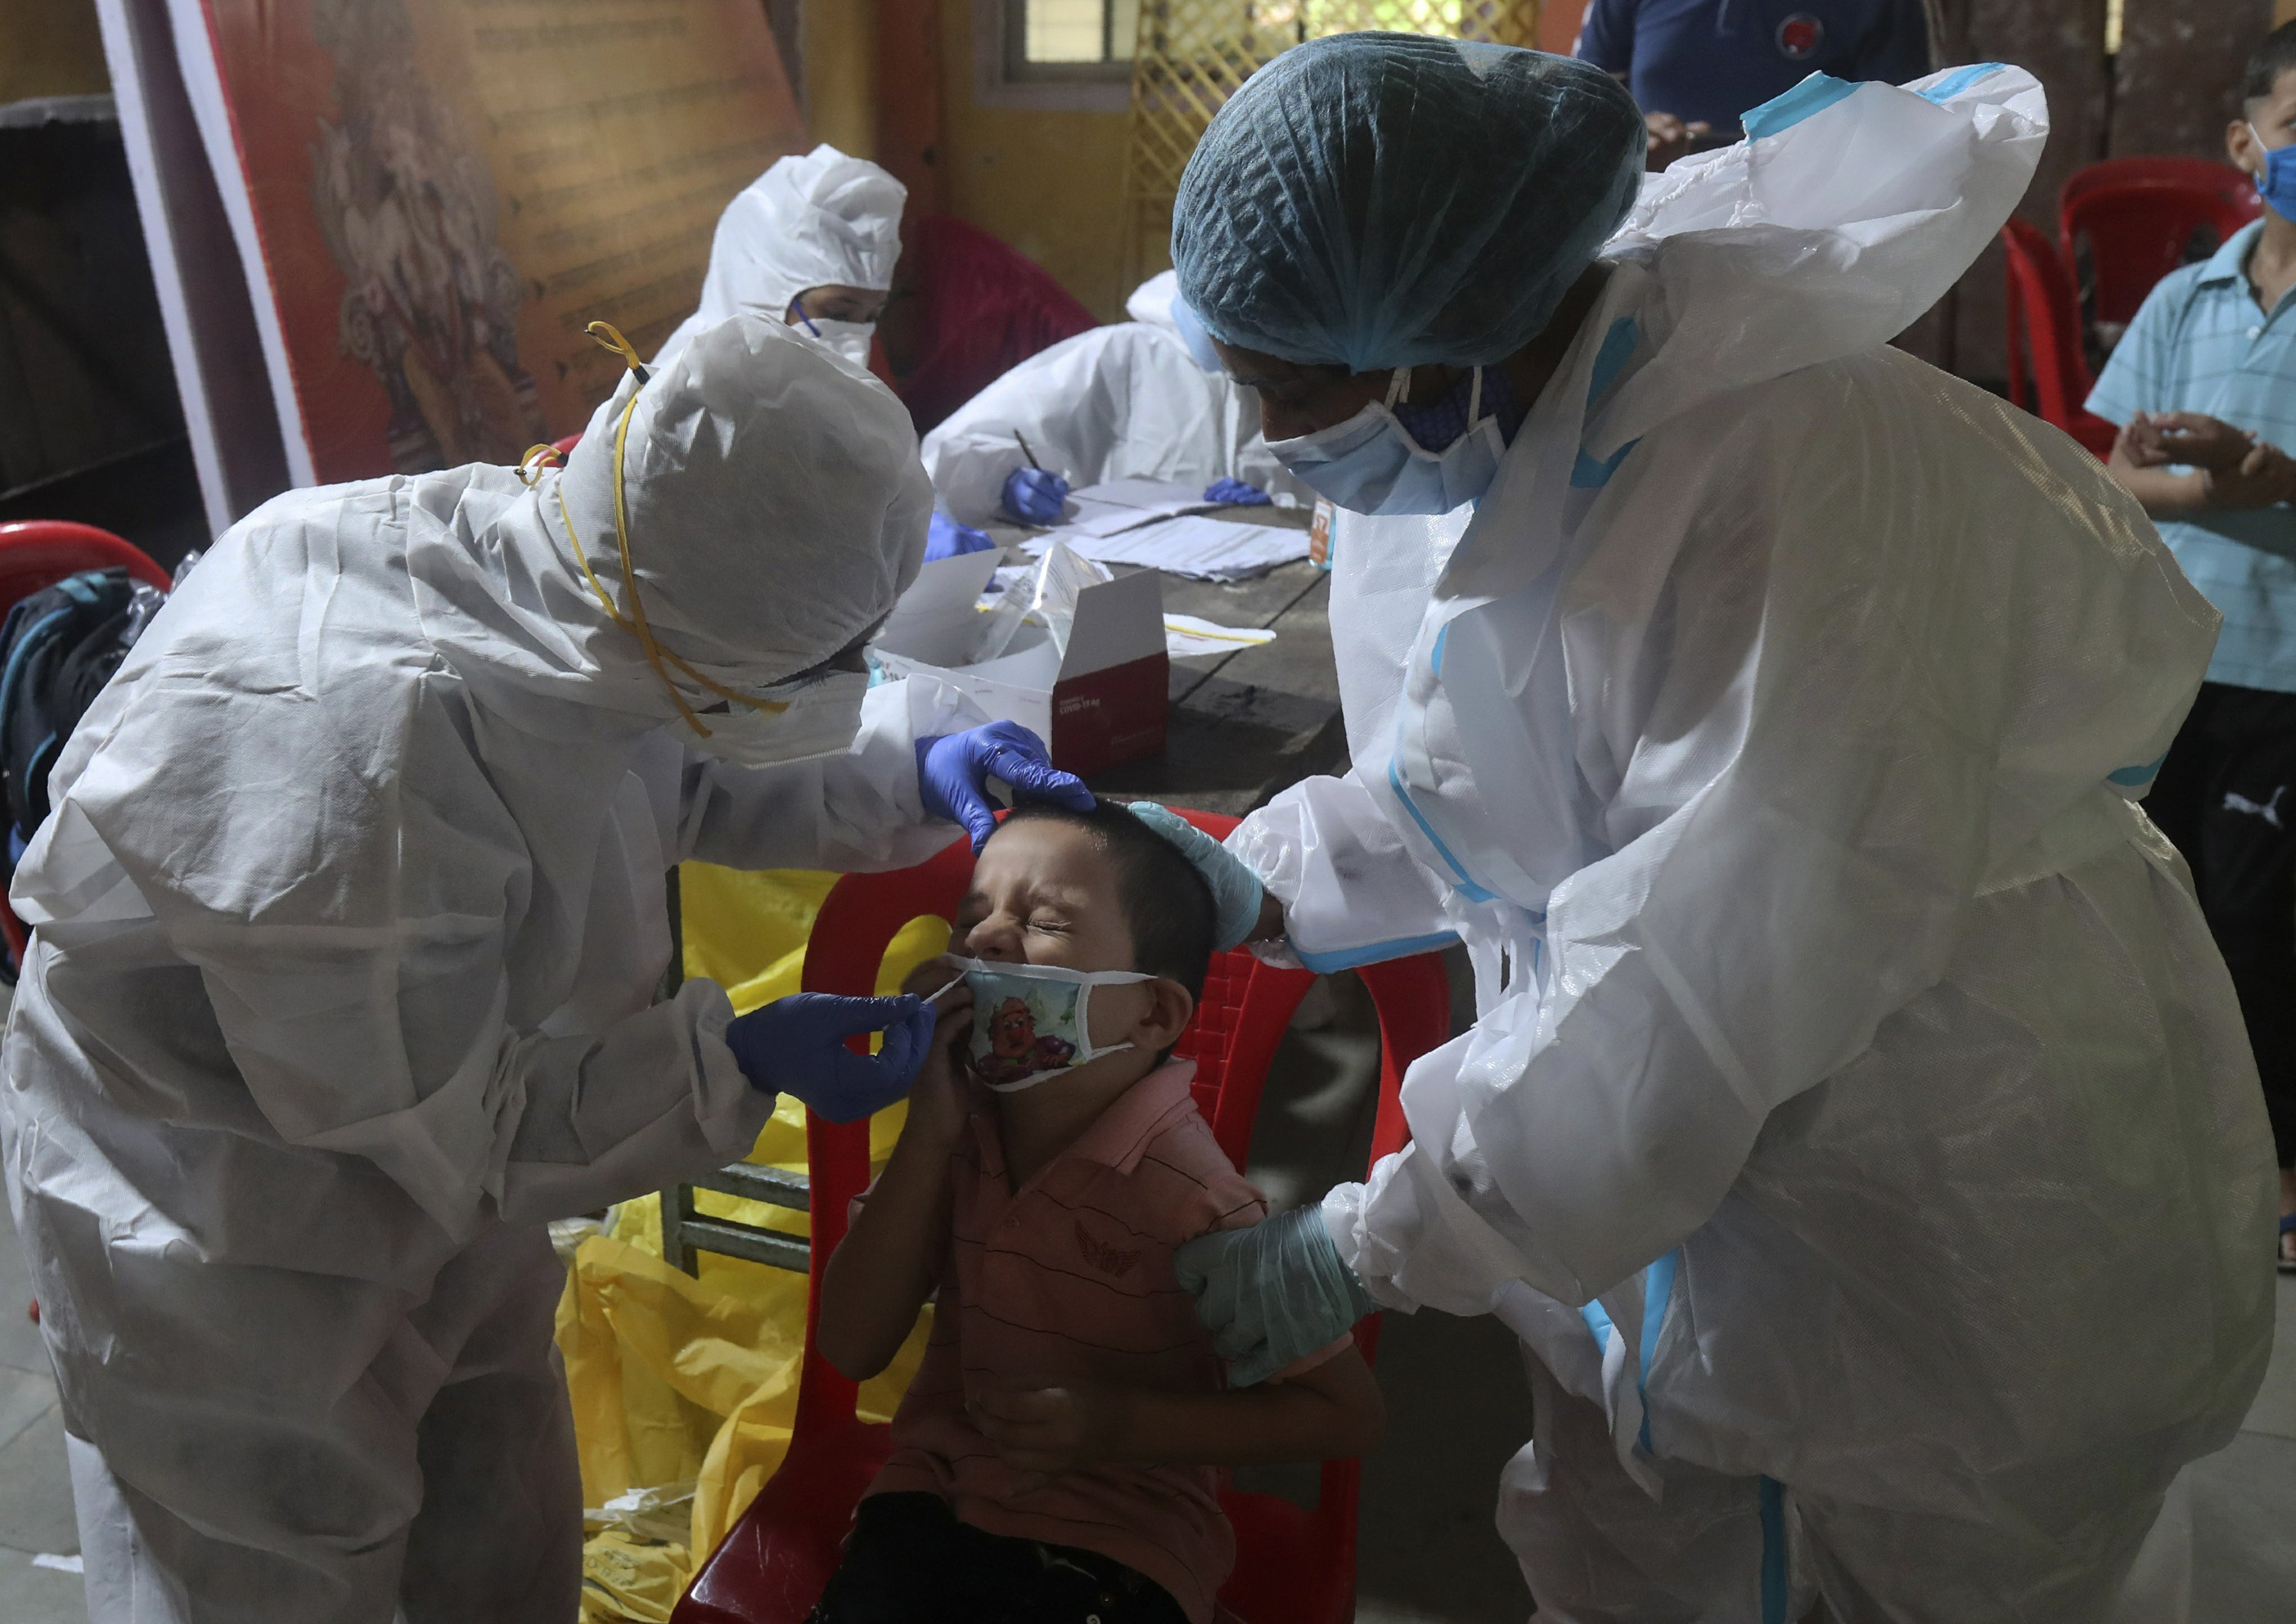 5M people infected, India's virus outbreak still soaring